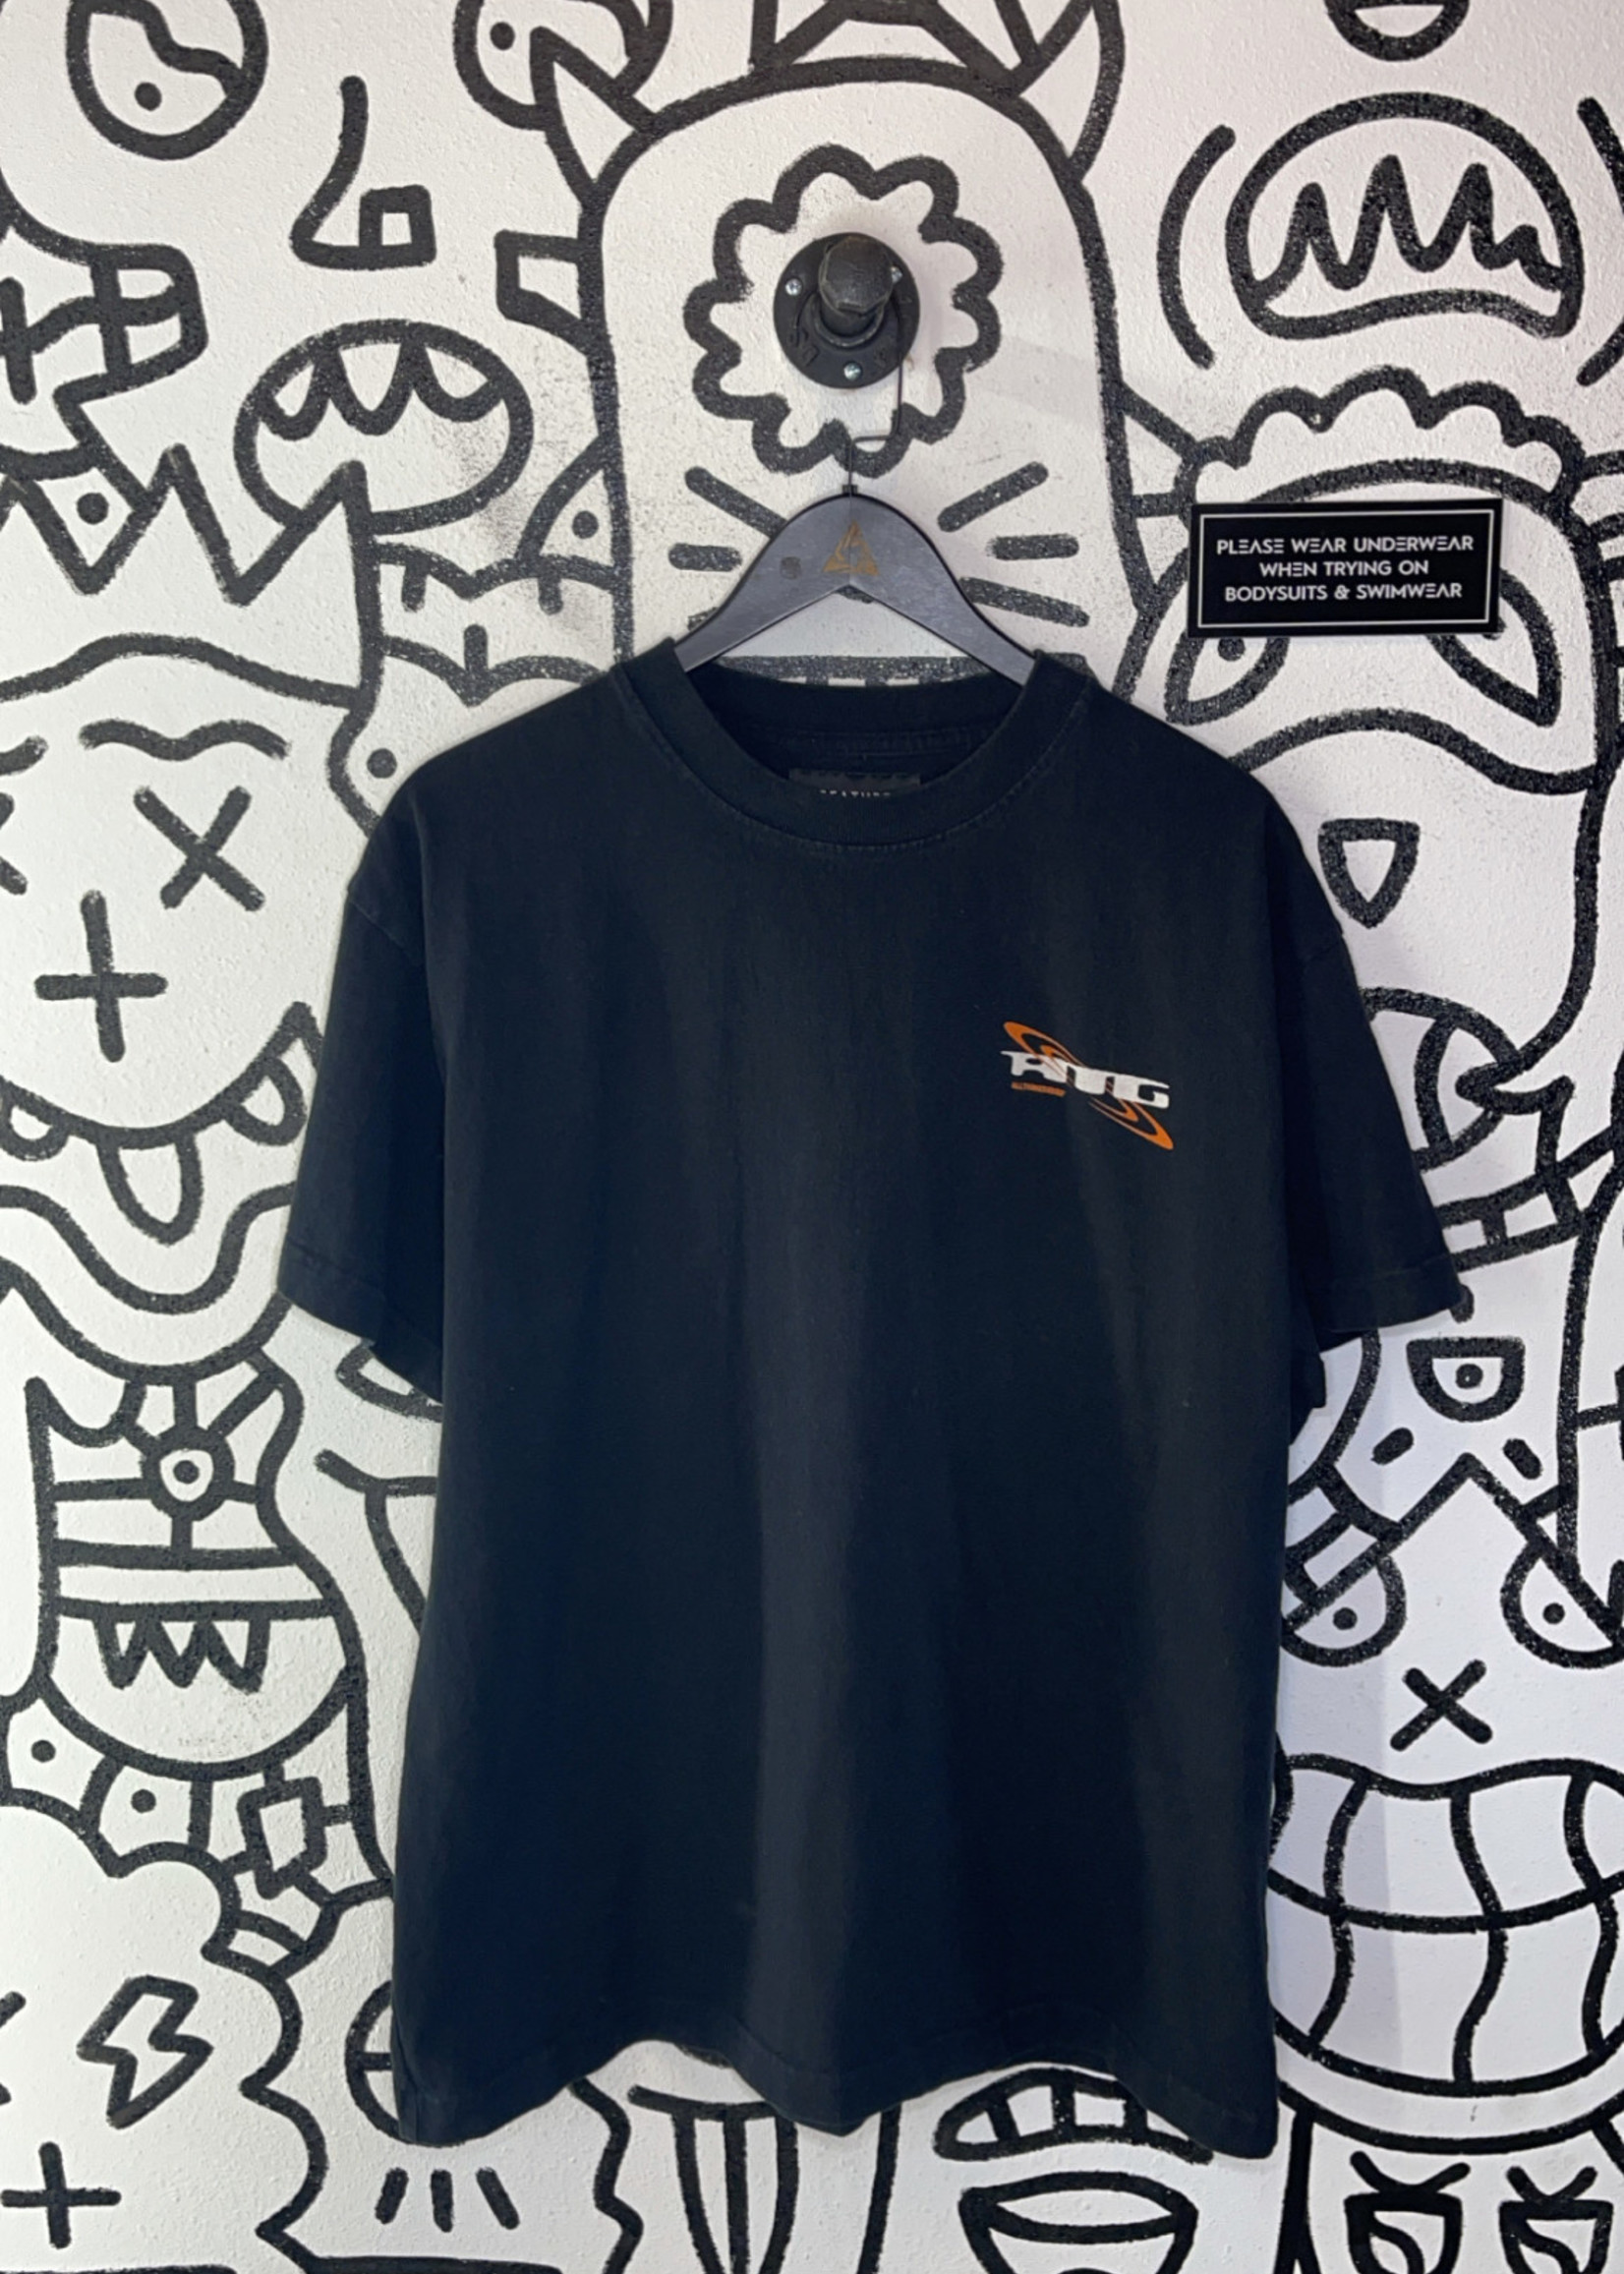 Feature x All Things Good Black Tee XL